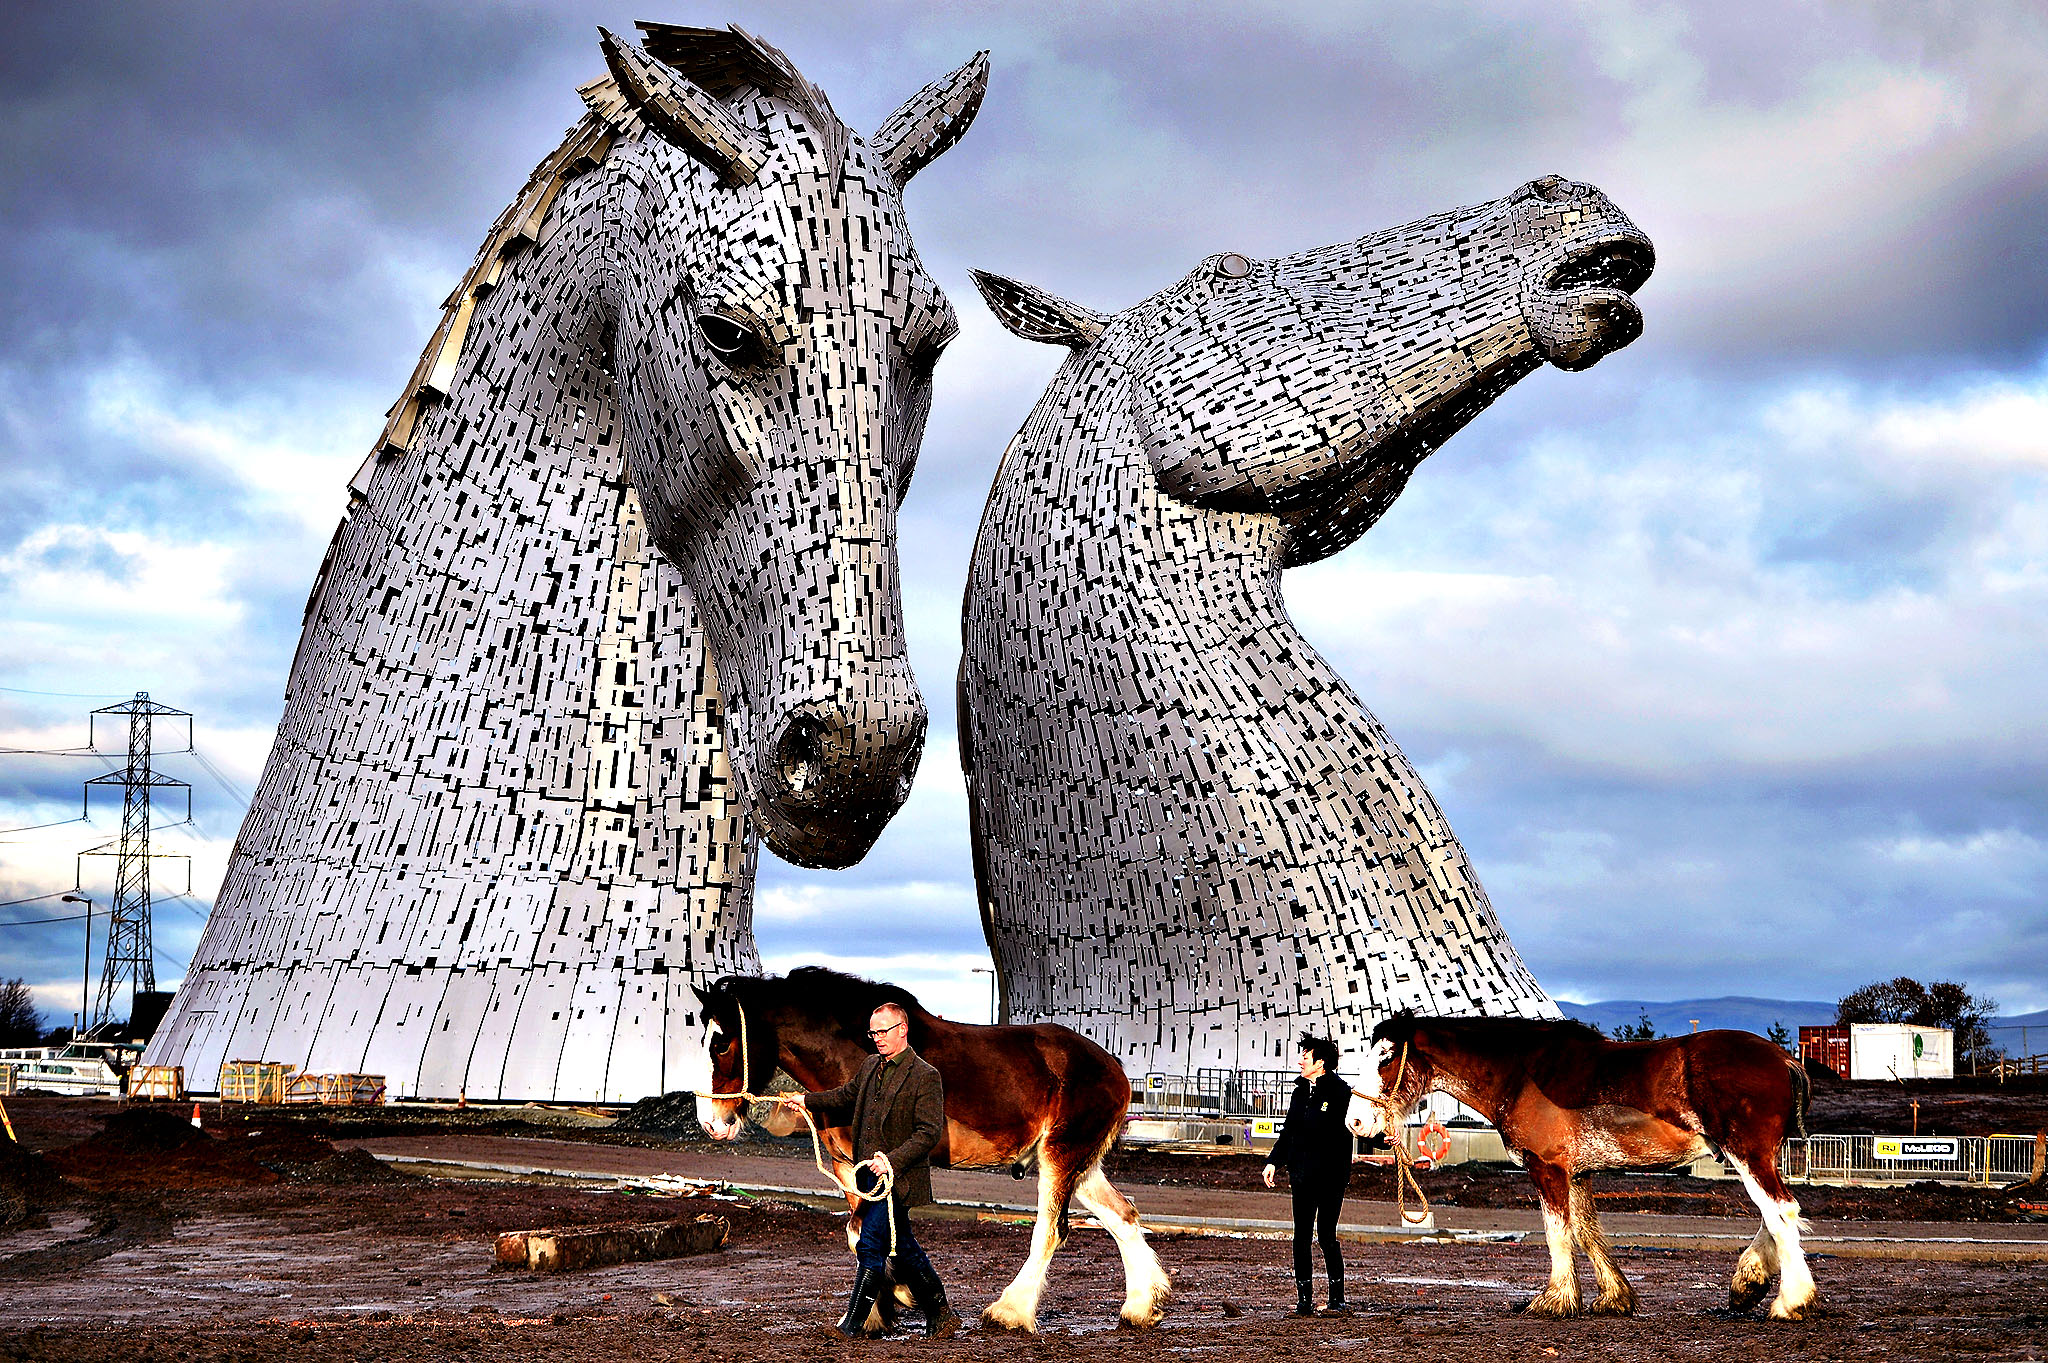 Andy Scott stands with Clydesdale Horses Duke and Baron and Donna Auchinvole during a topping out ceremony at The Kelpies on November 27, 2013 in Falkirk, Scotland. Construction work has been completed on Andy Scott's Kelpies, the world's largest pair of equine sculptures and one of the UKs tallest pieces of public art. The 30 metre tall Kelpies have cost  5million to complete and play a central role in the  43 million, 350-hectare Helix land transformational project between Falkirk and Grangemouth.